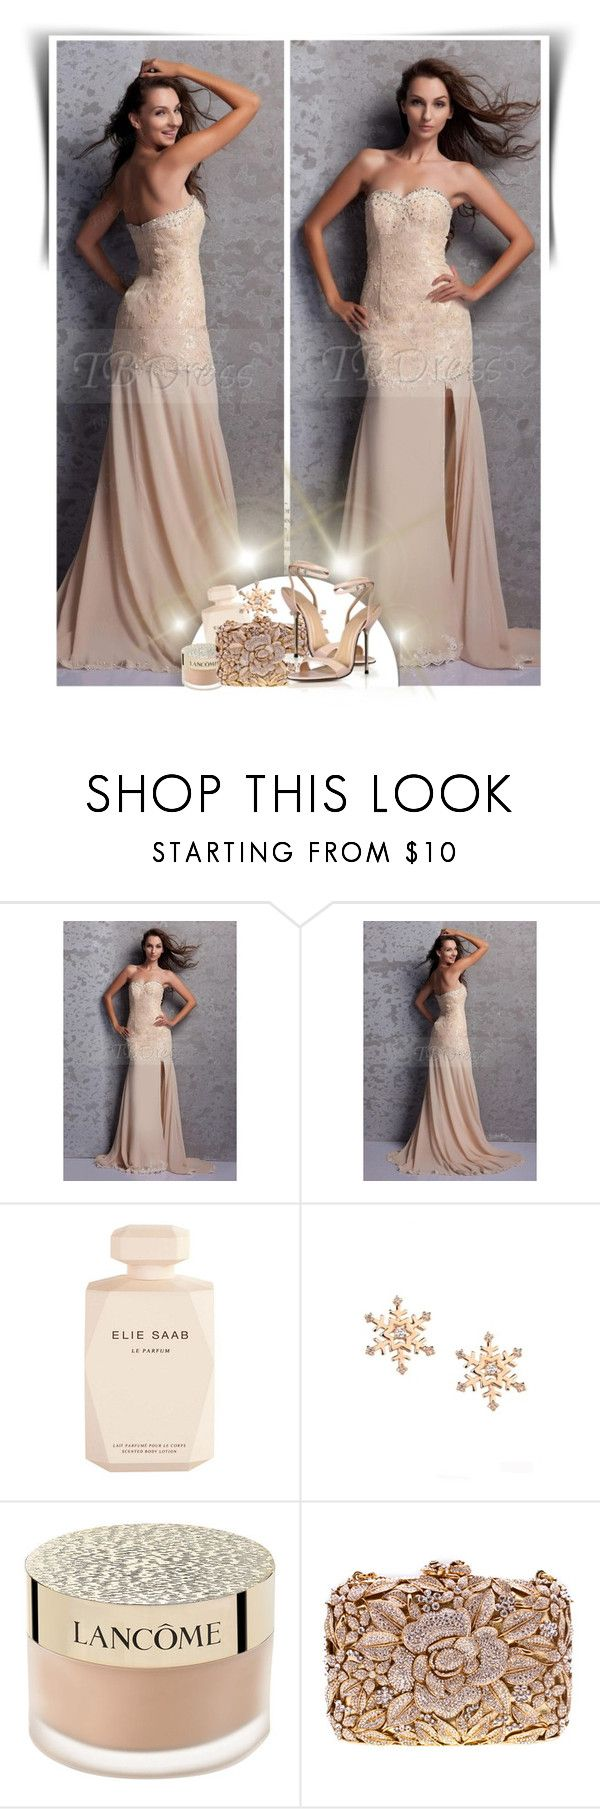 """""""TB Dress"""" by dalila-mujic ❤ liked on Polyvore featuring Elie Saab, Lancôme and tbdress"""